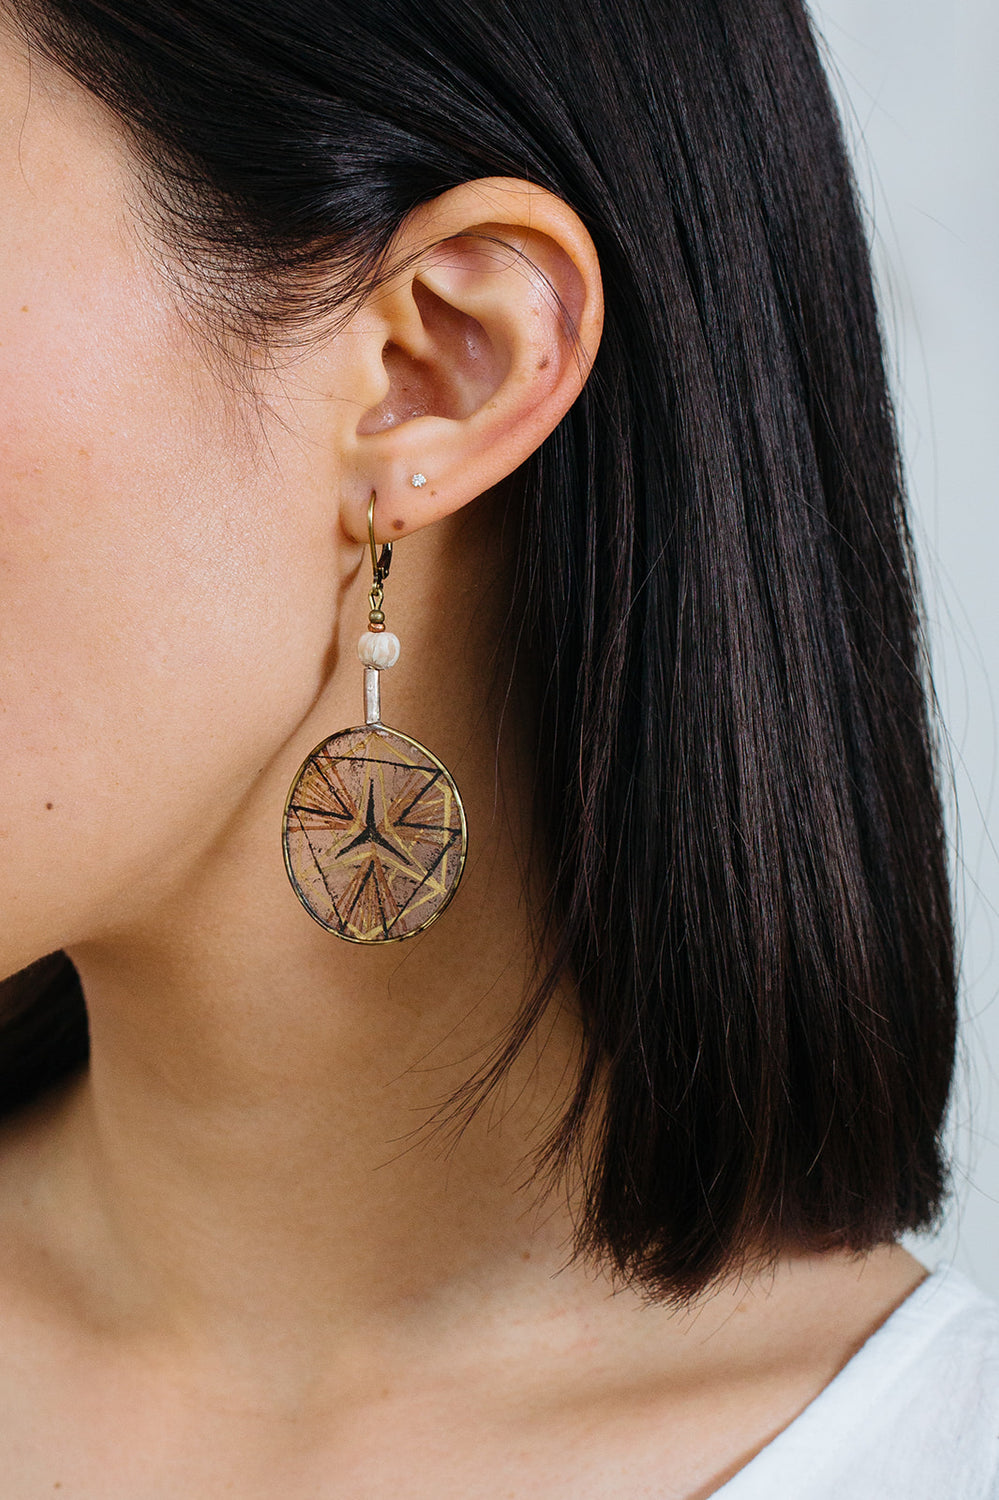 Mïndlla Earrings, A